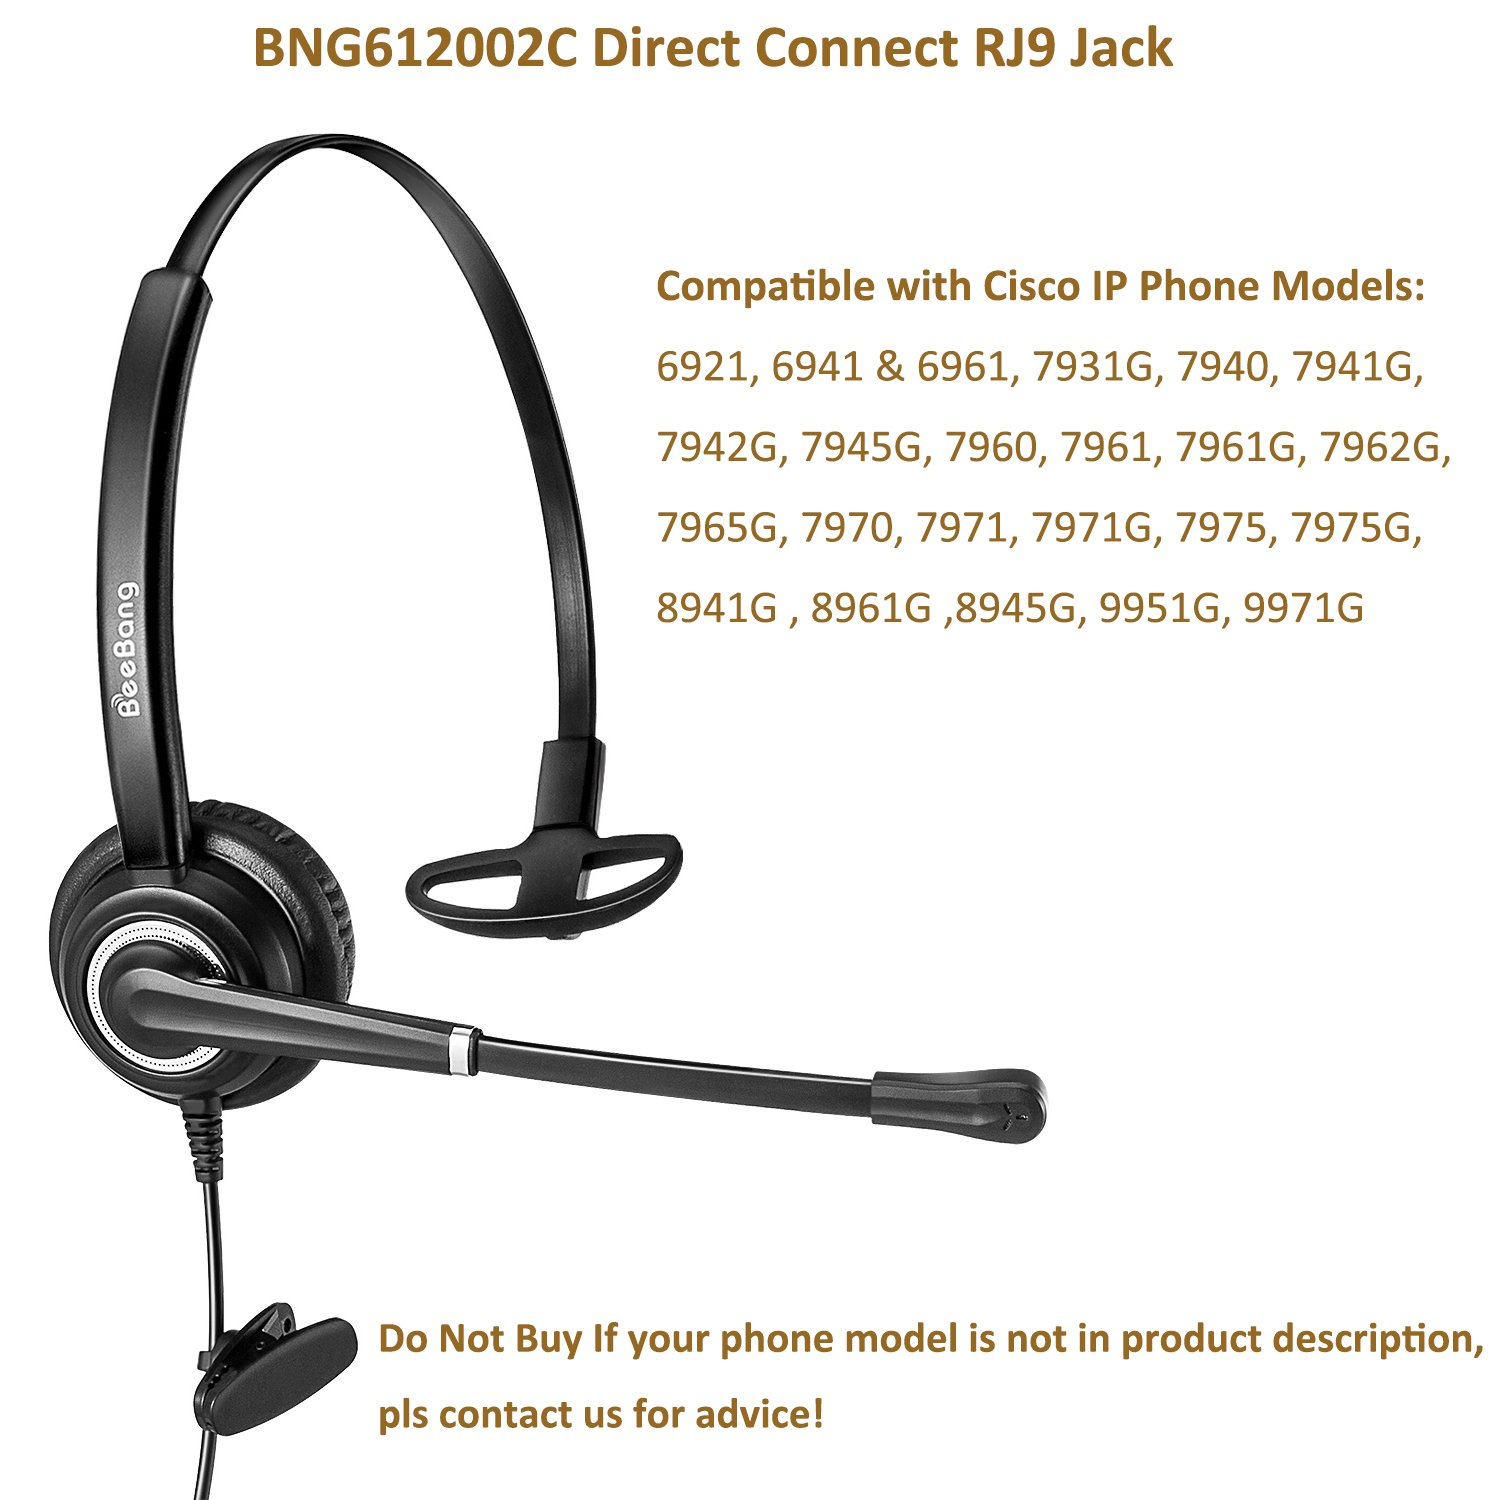 Cisco Headset With Rj9 Jack For Landline Phone How To Identify Ics In Your 7941g And 7961g Phones Noise Cancelling Microphone Volume Control Call Centers Offices Home